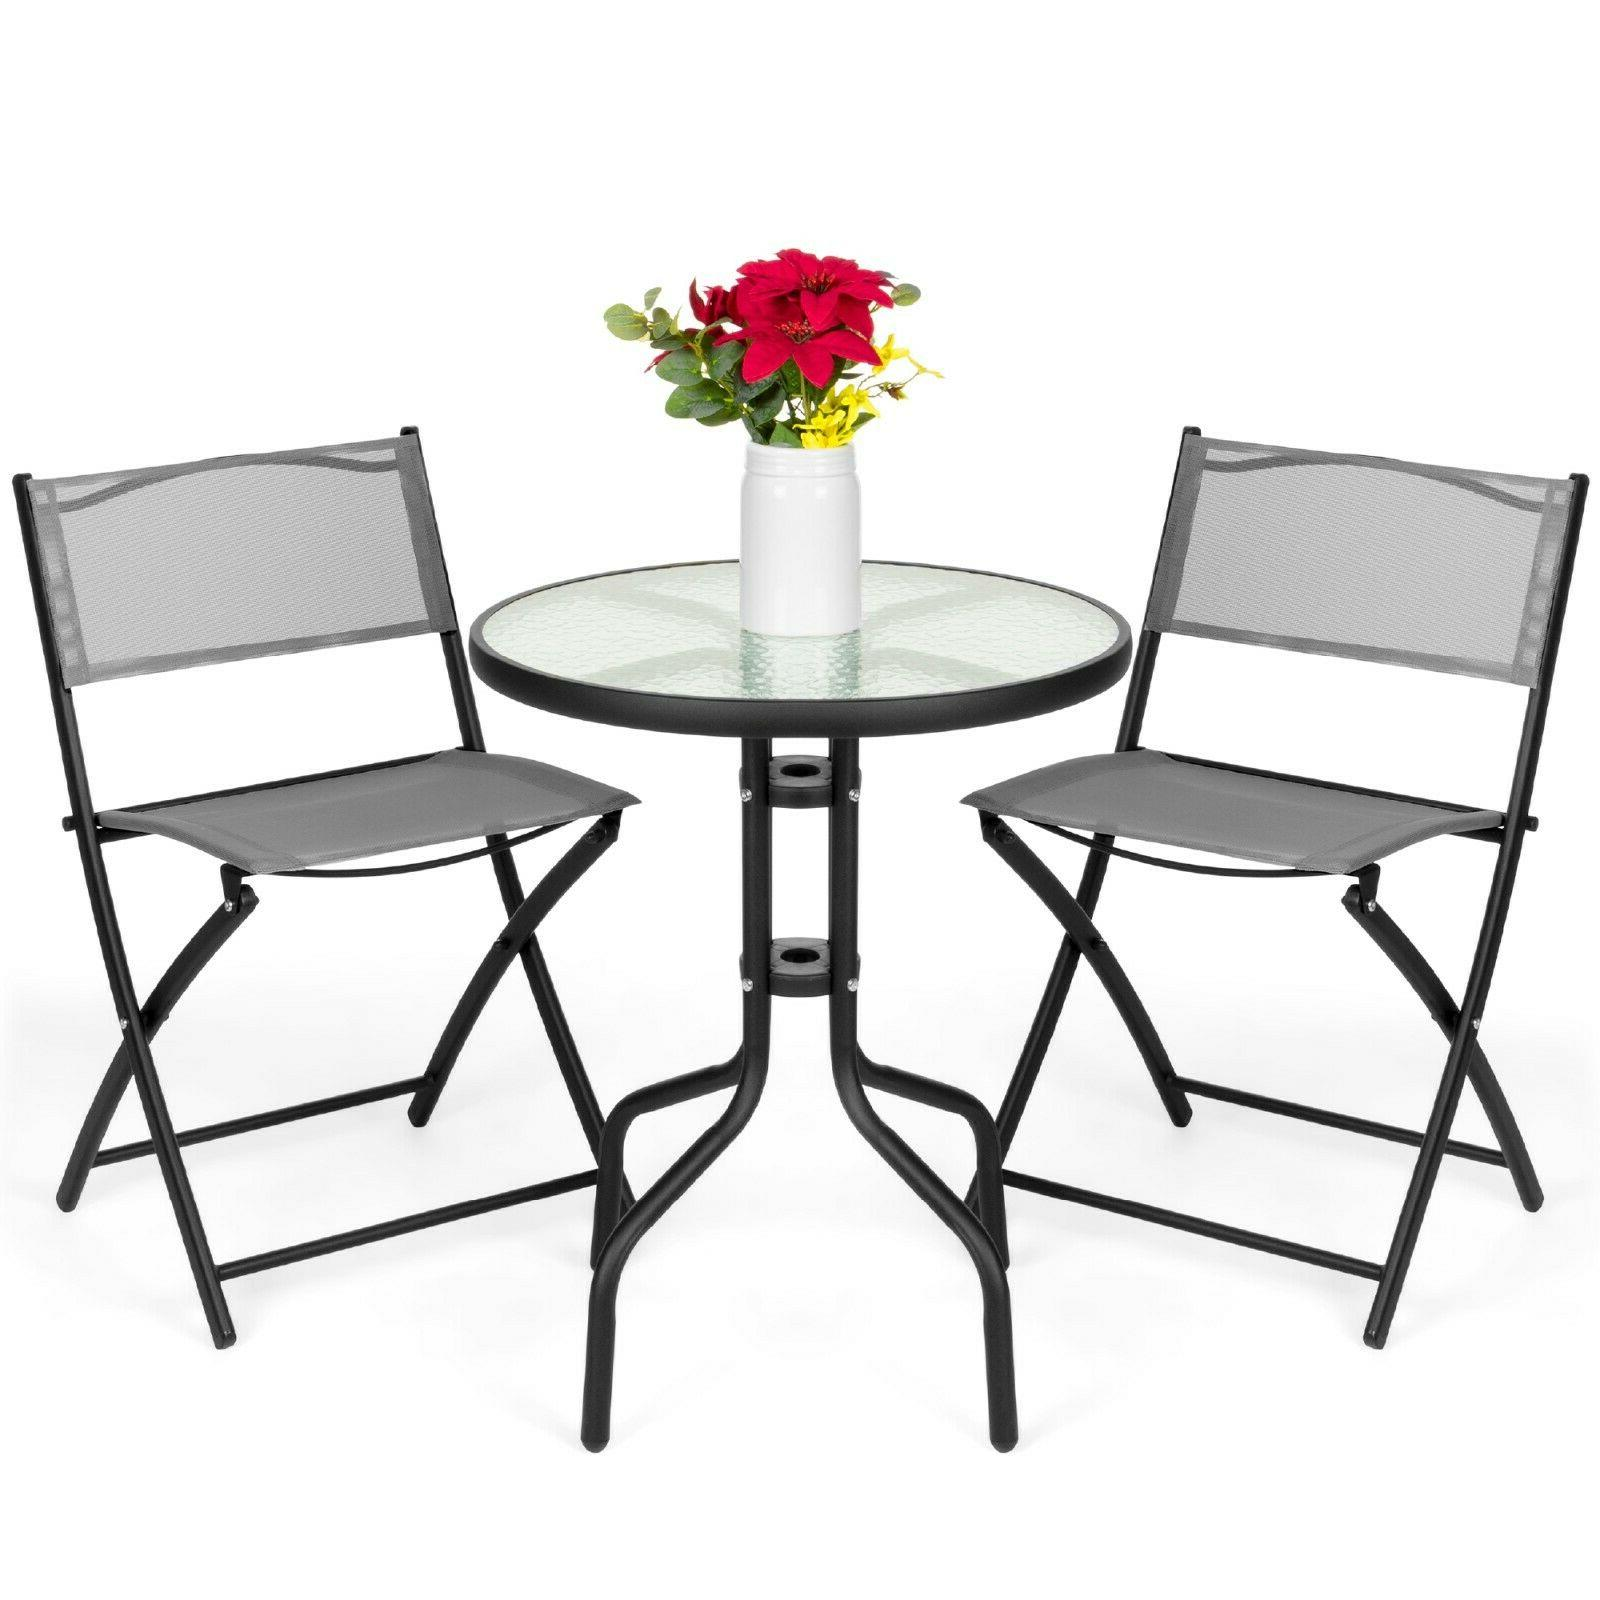 best choice products 3 piece patio bistro